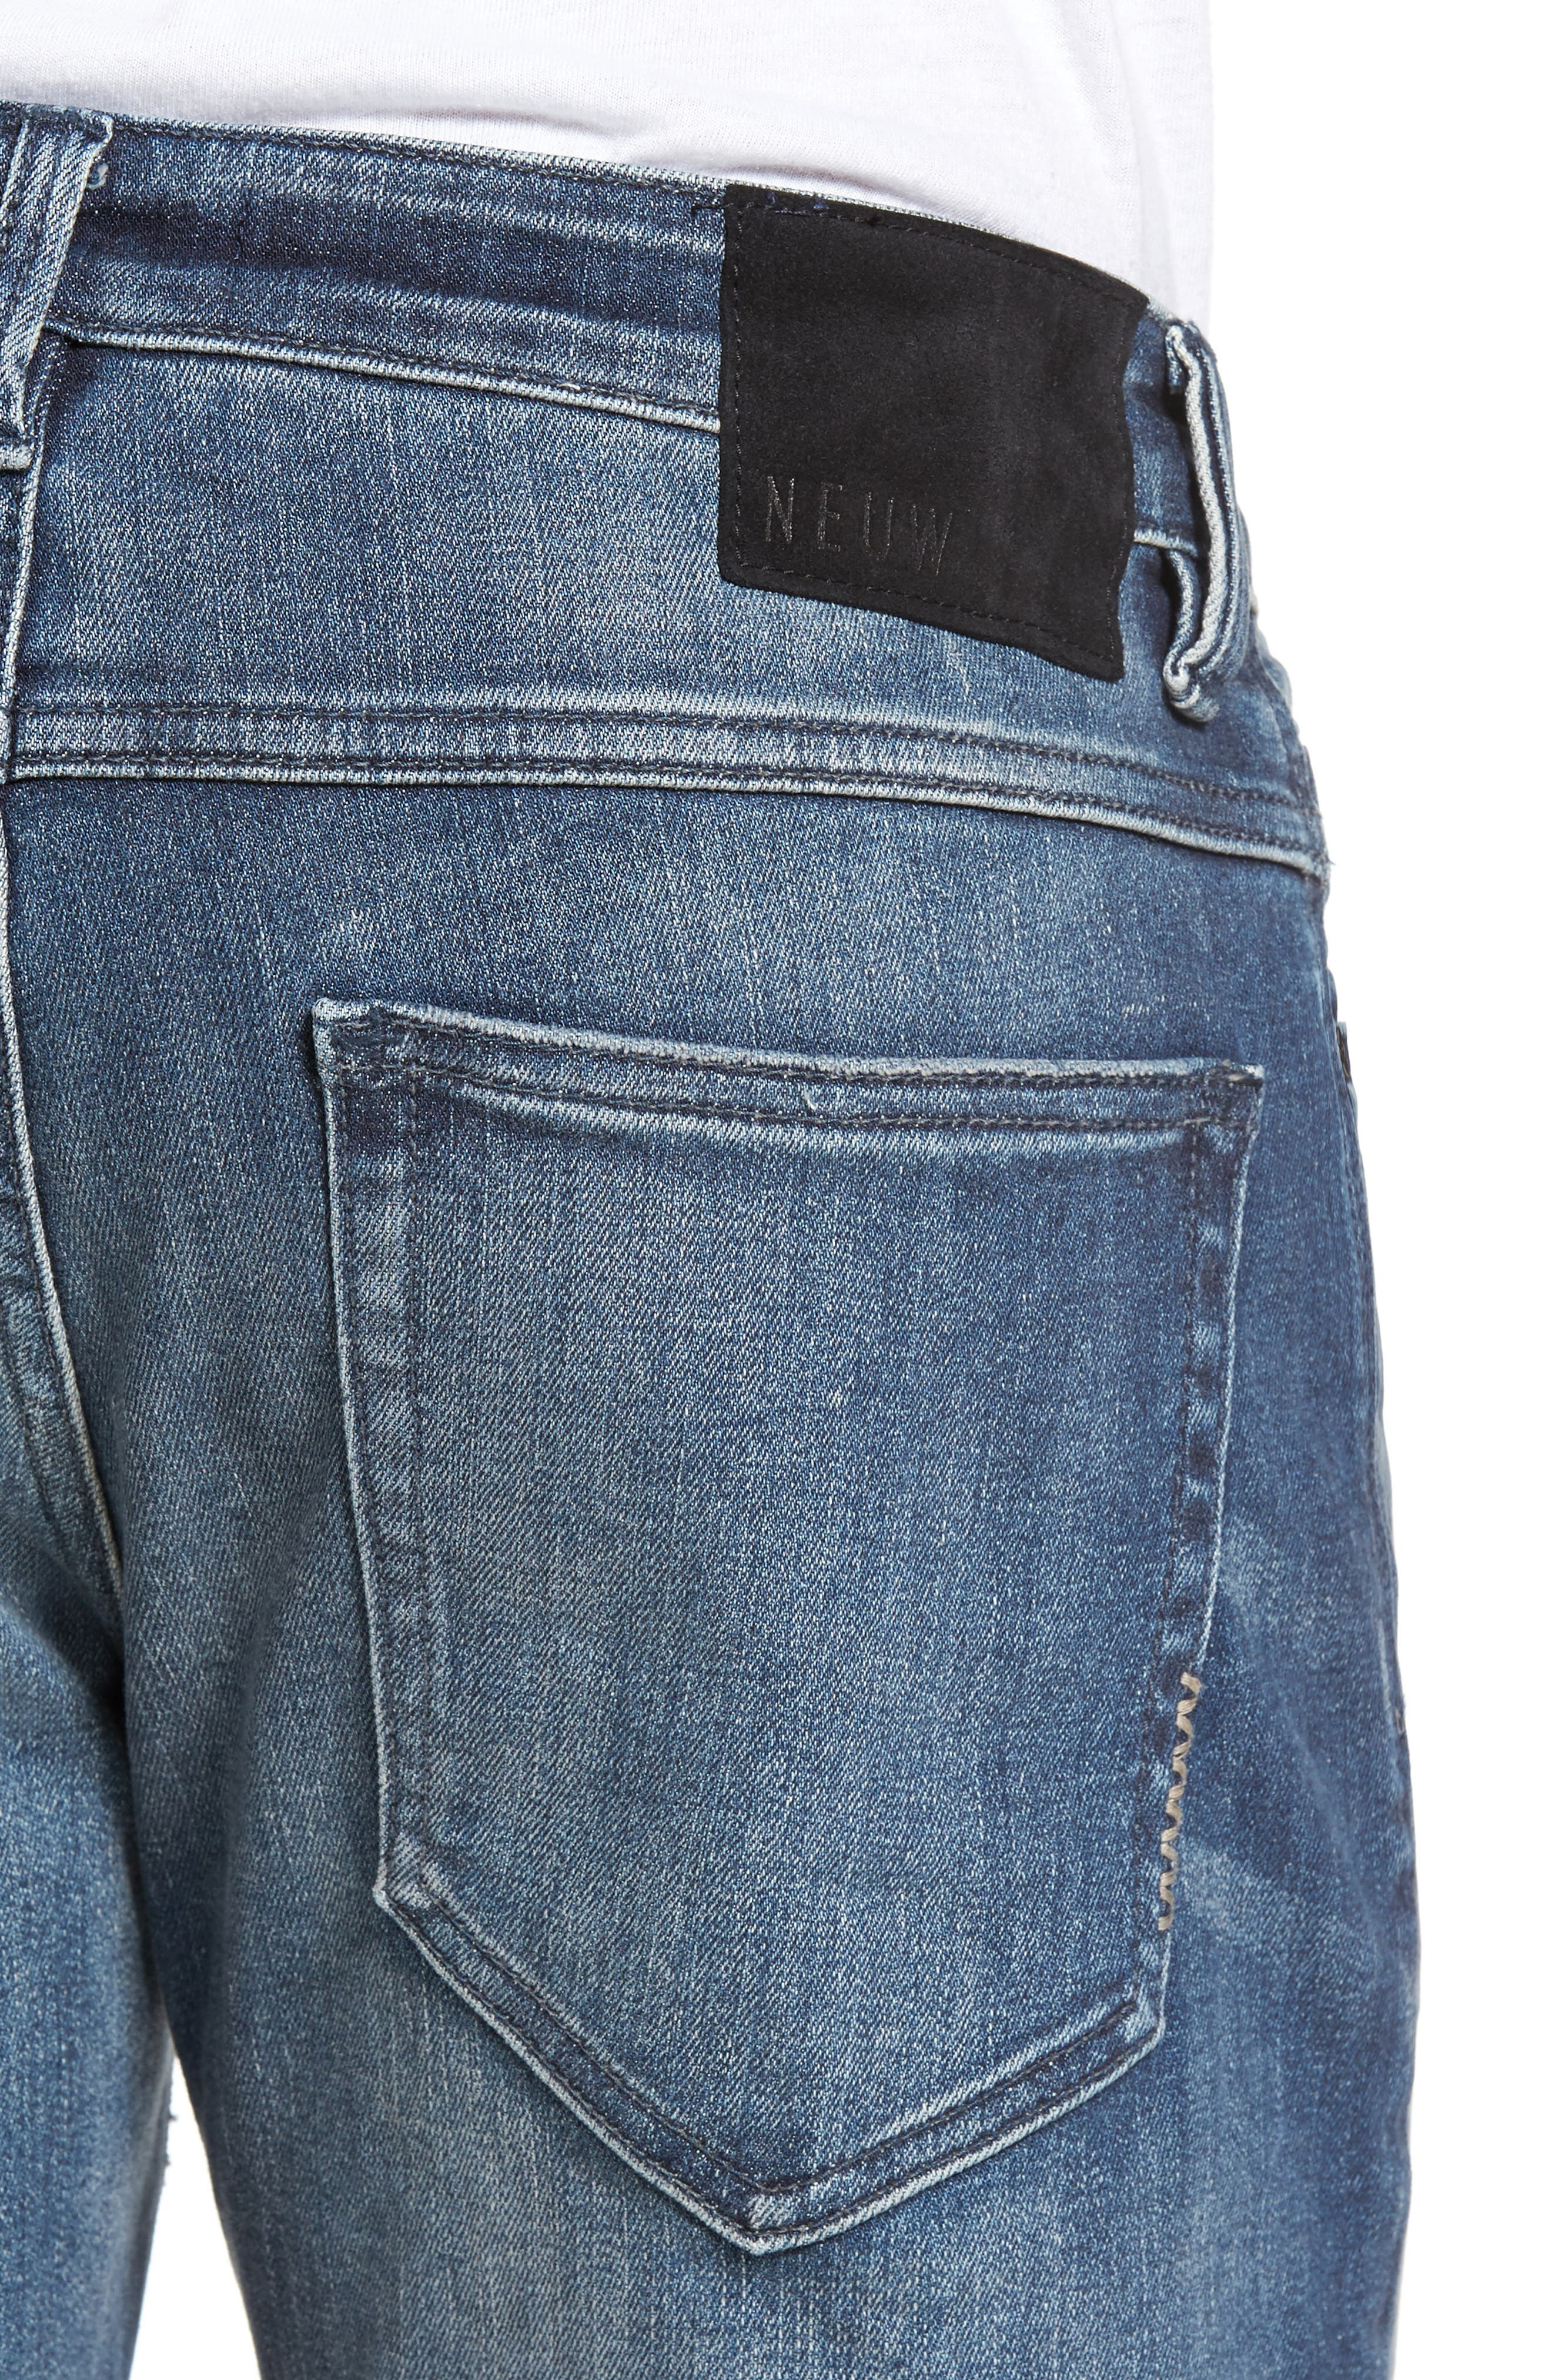 Alternate Image 4  - NEUW Lou Slim Fit Jeans (Biker Wash)